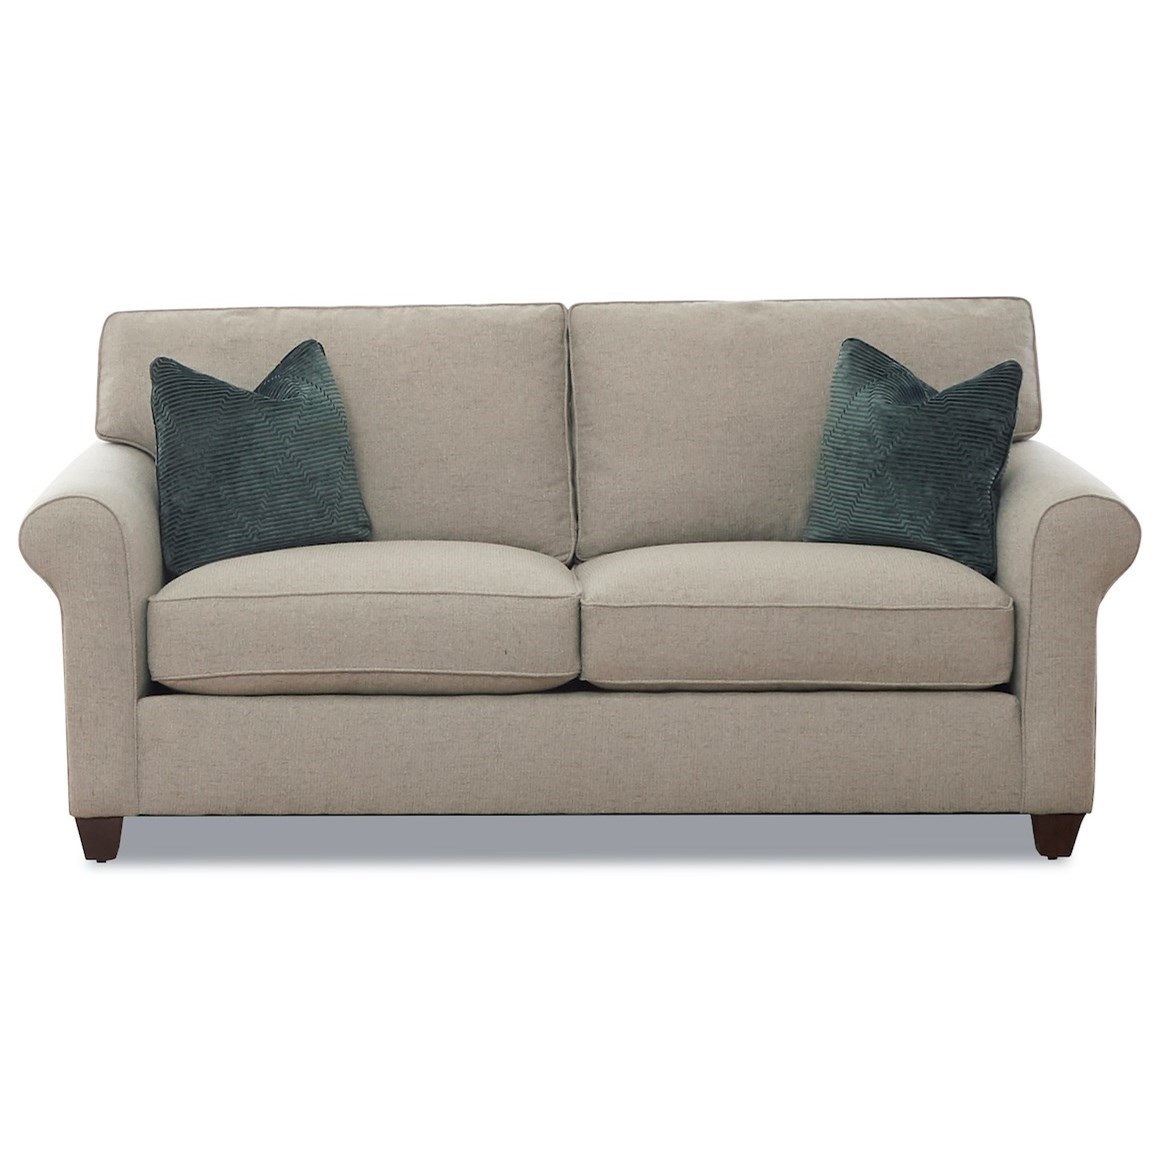 Lillington Distinctions  Stationary Sofa by Klaussner at Johnny Janosik